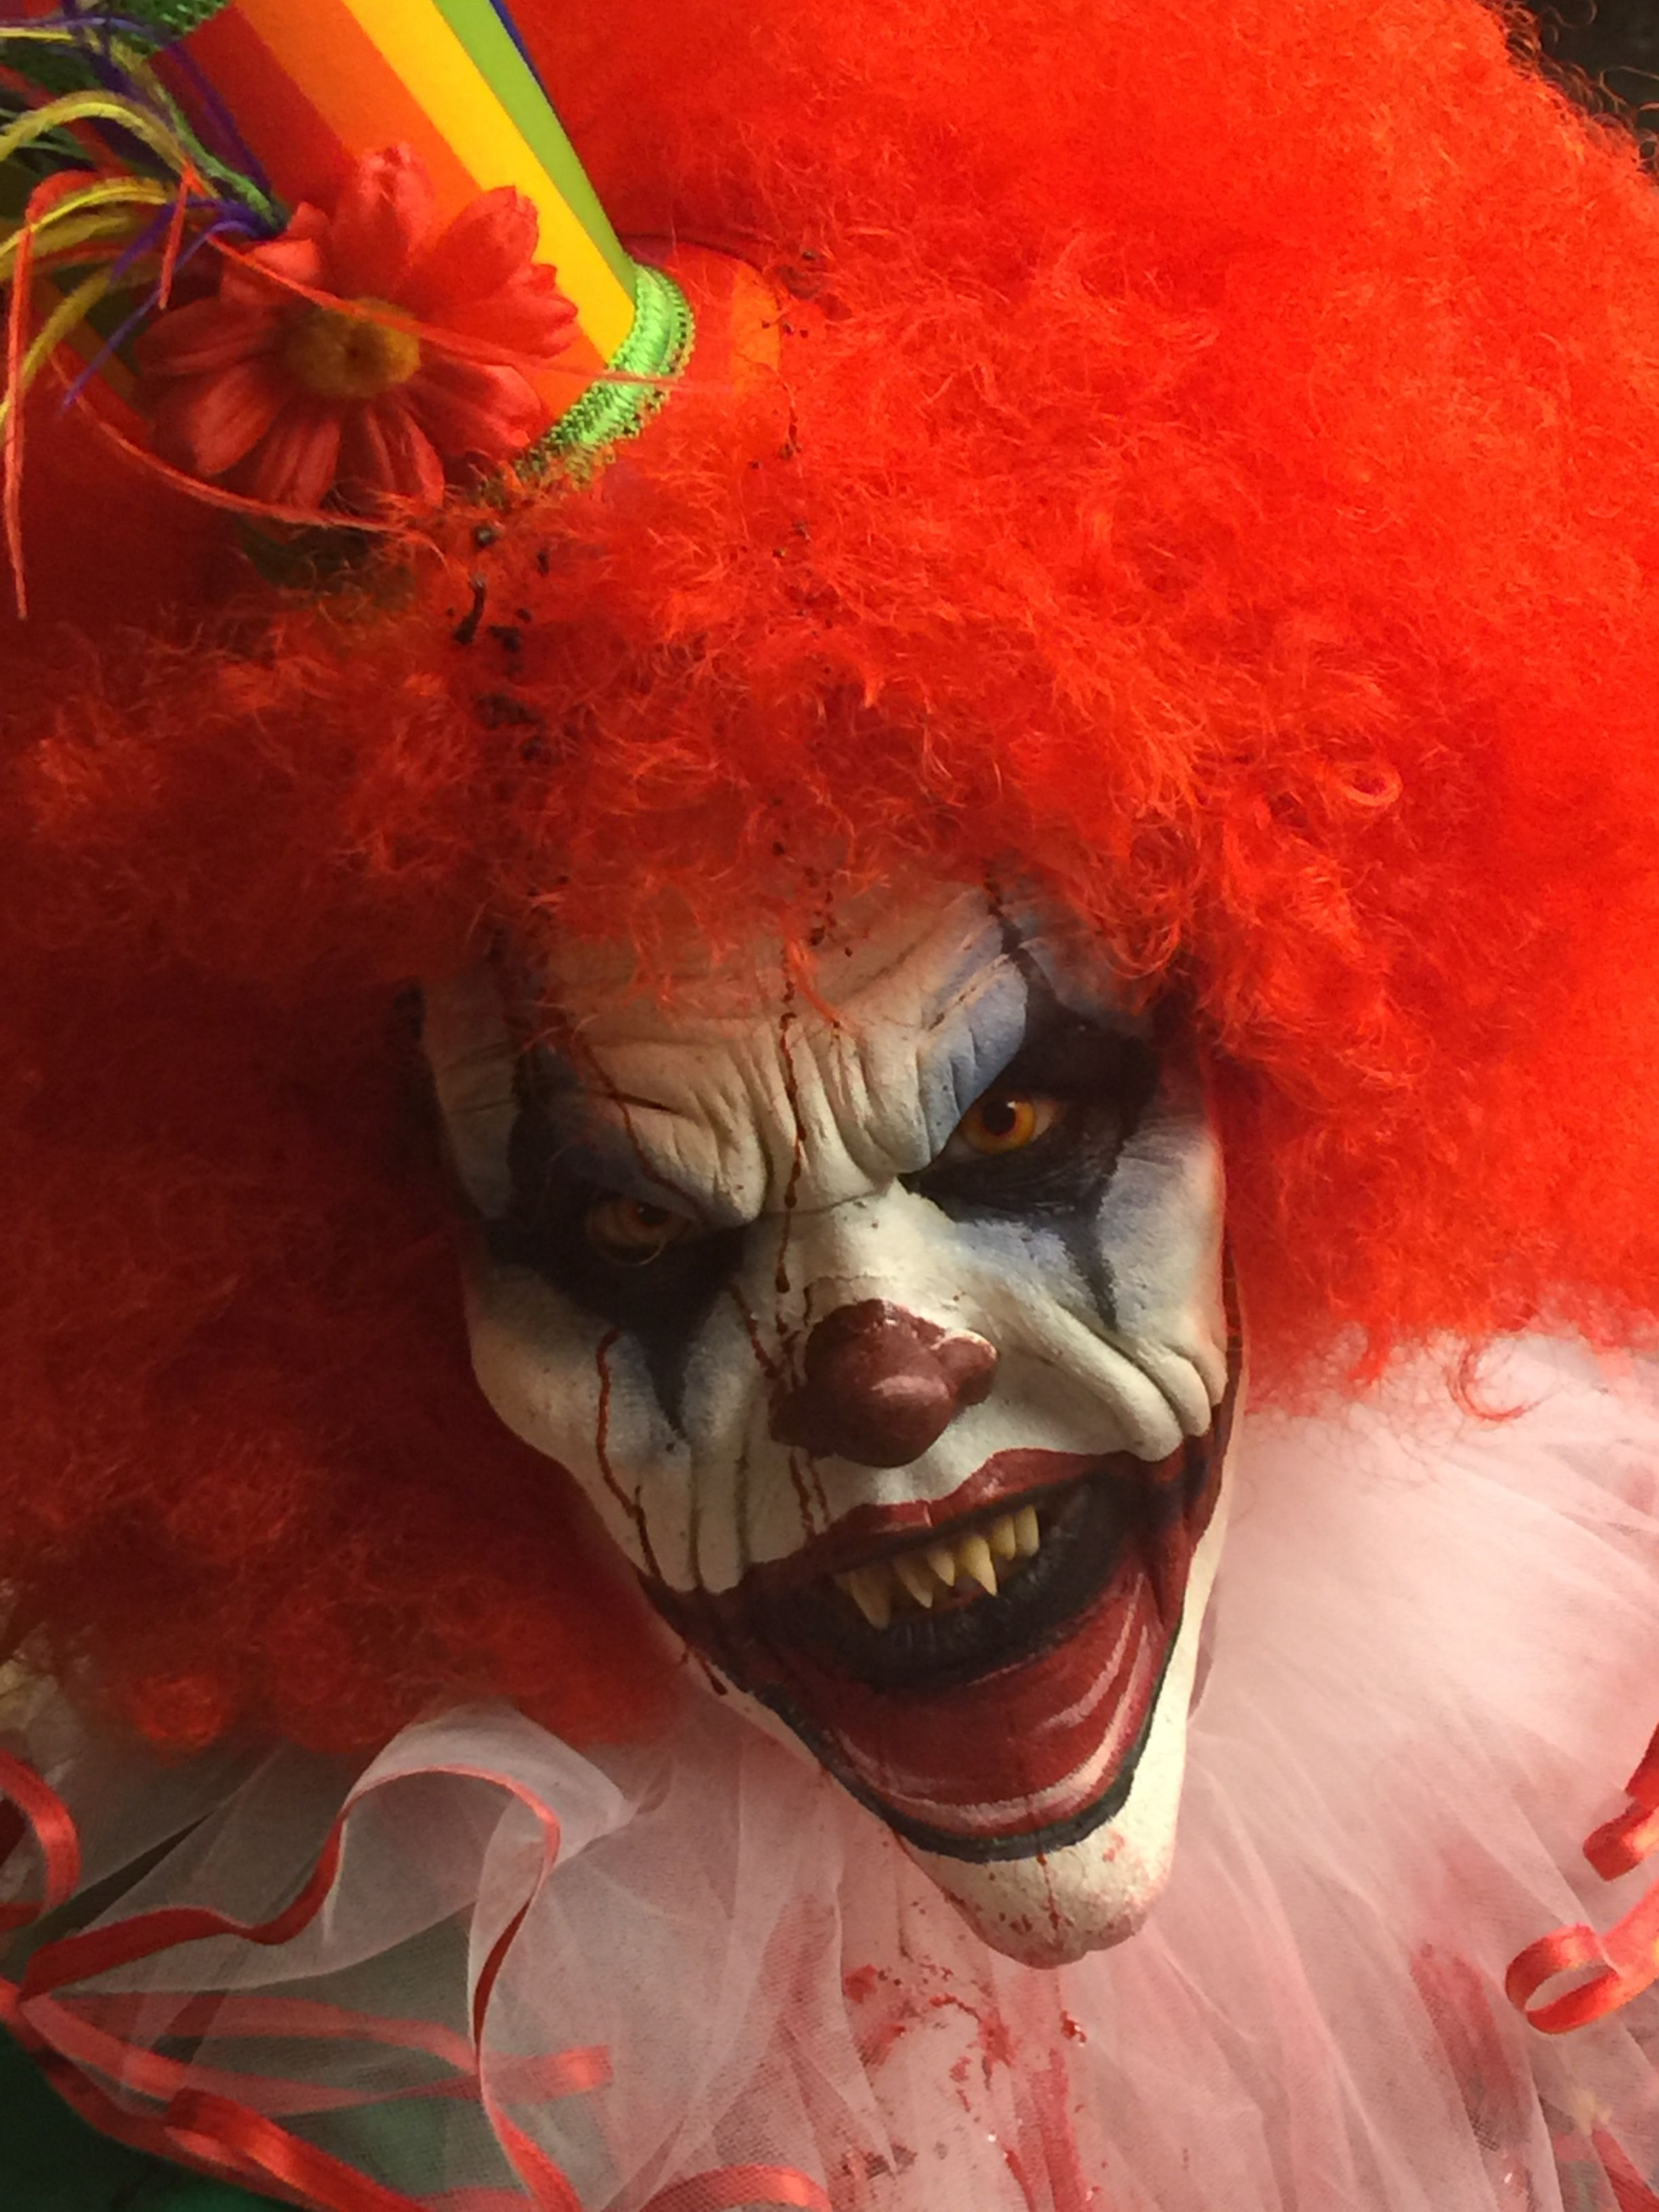 Pics of scary clowns